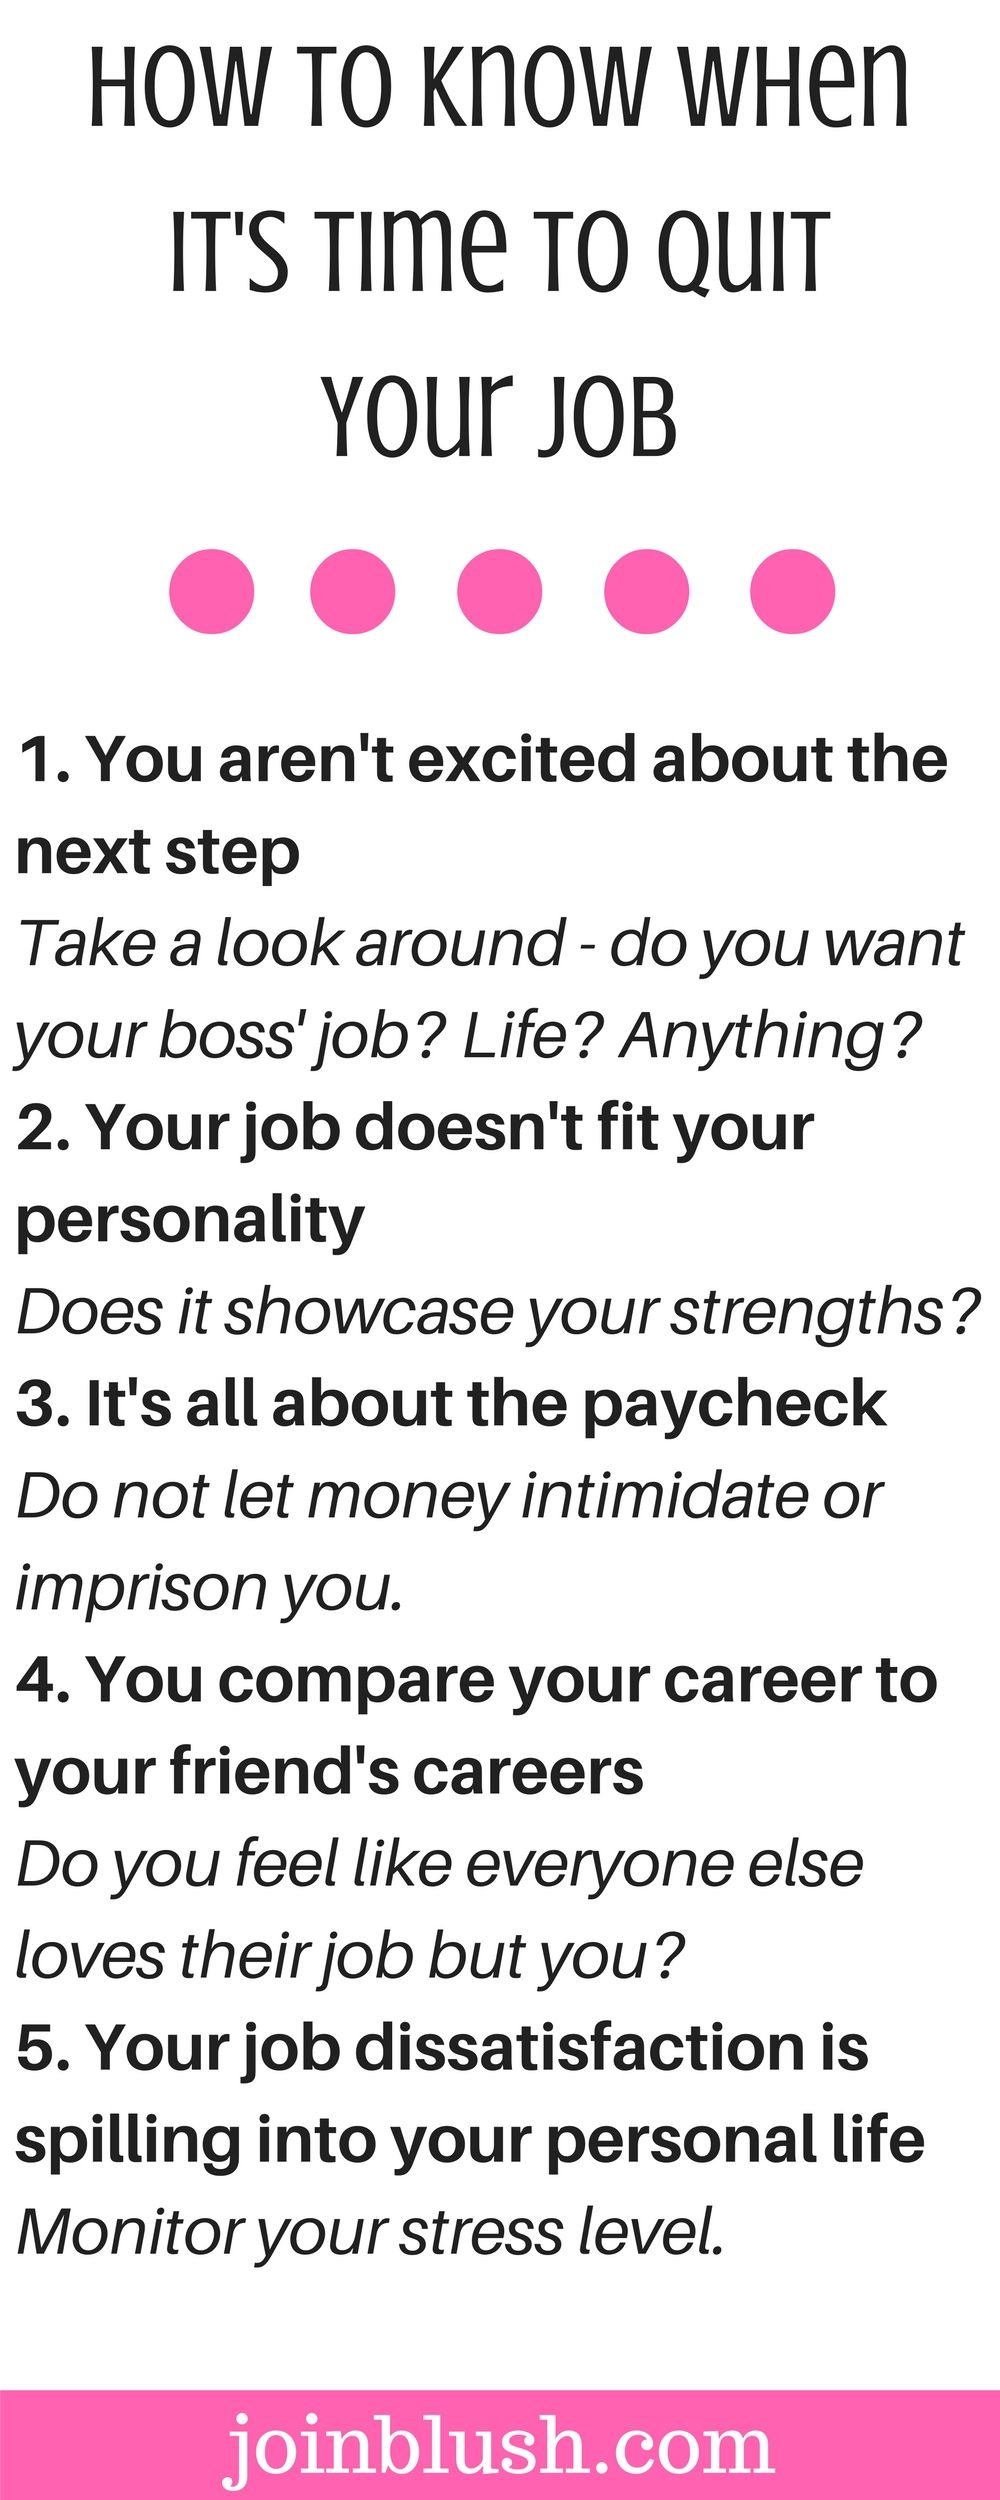 How To Know When ItS Time To Quit Your Job  Thoughts Career